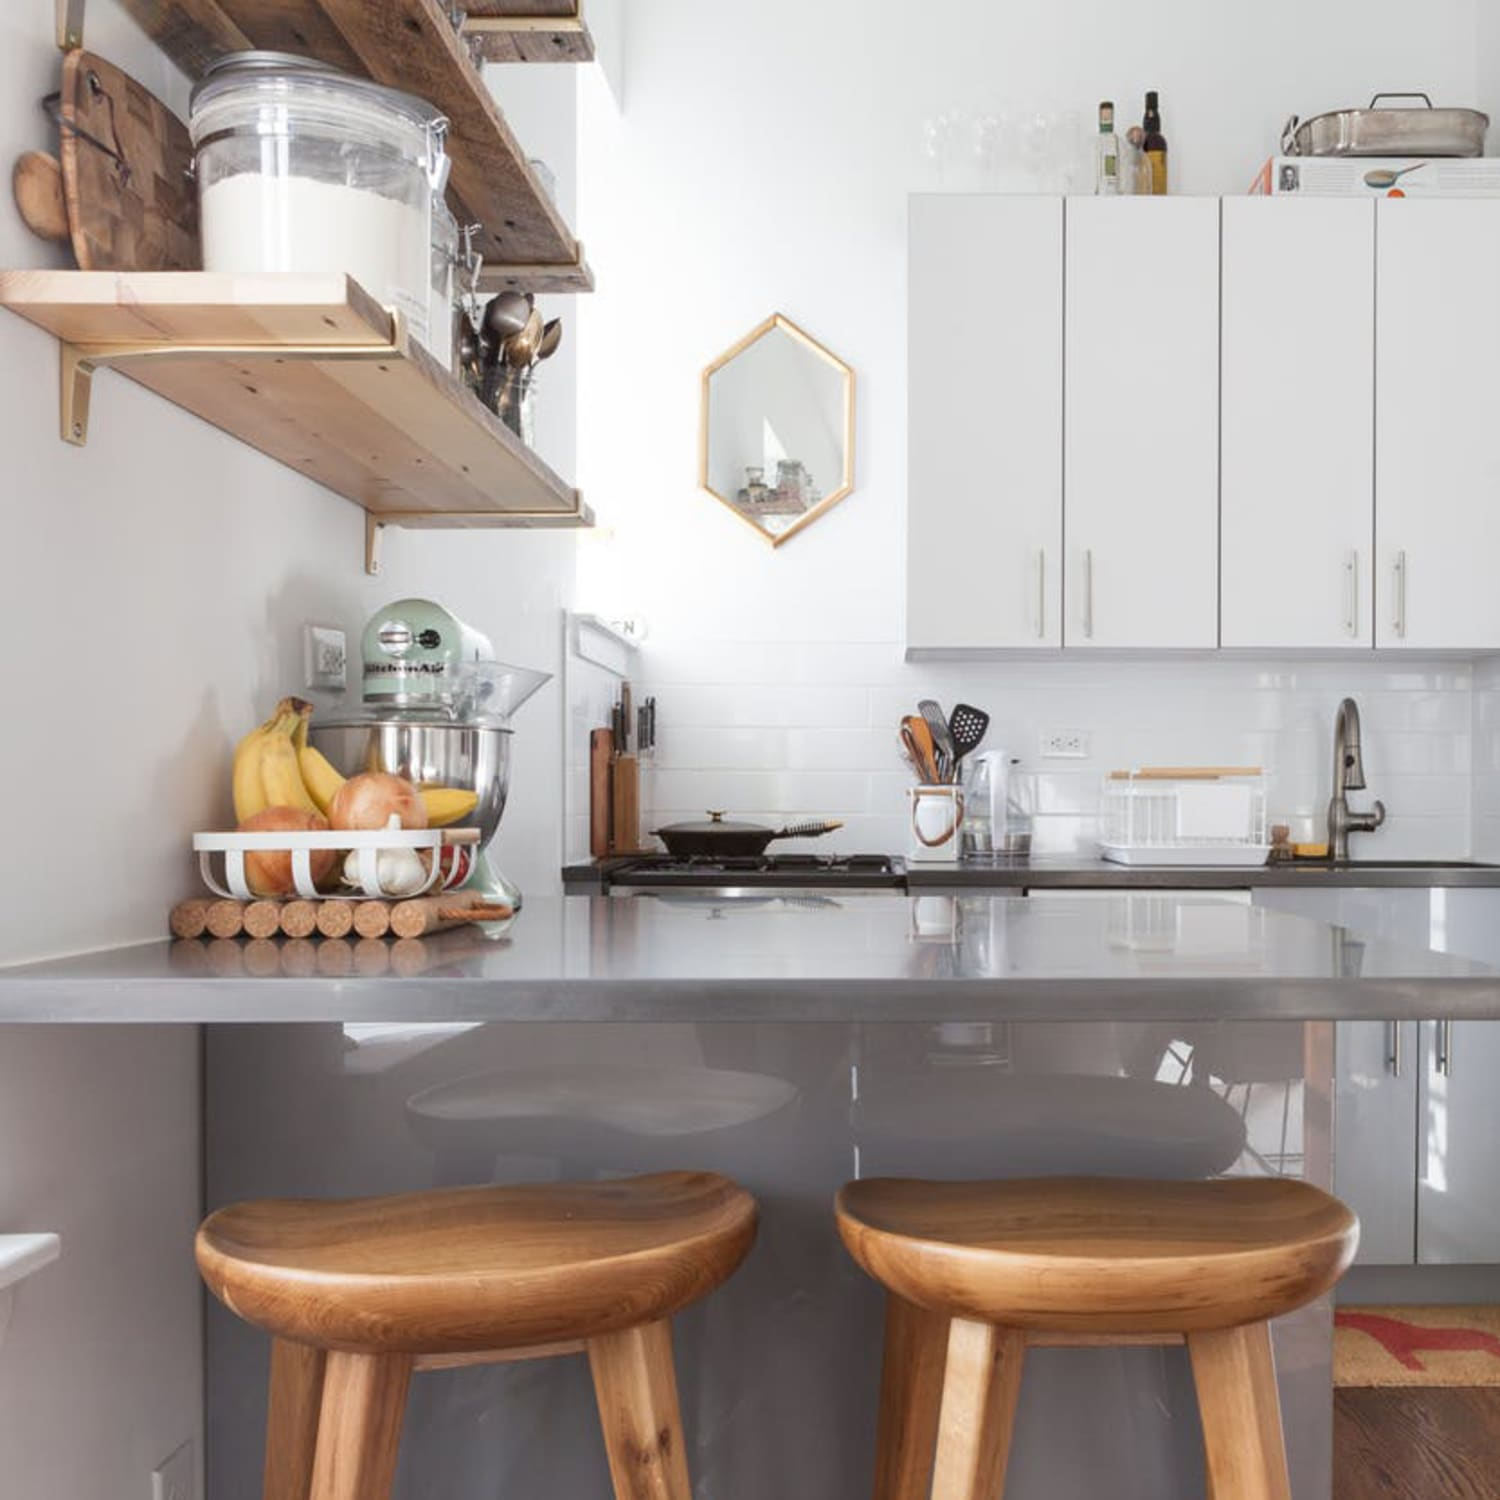 Easy, Stylish & Practical Improvements for Rental Kitchens ... on